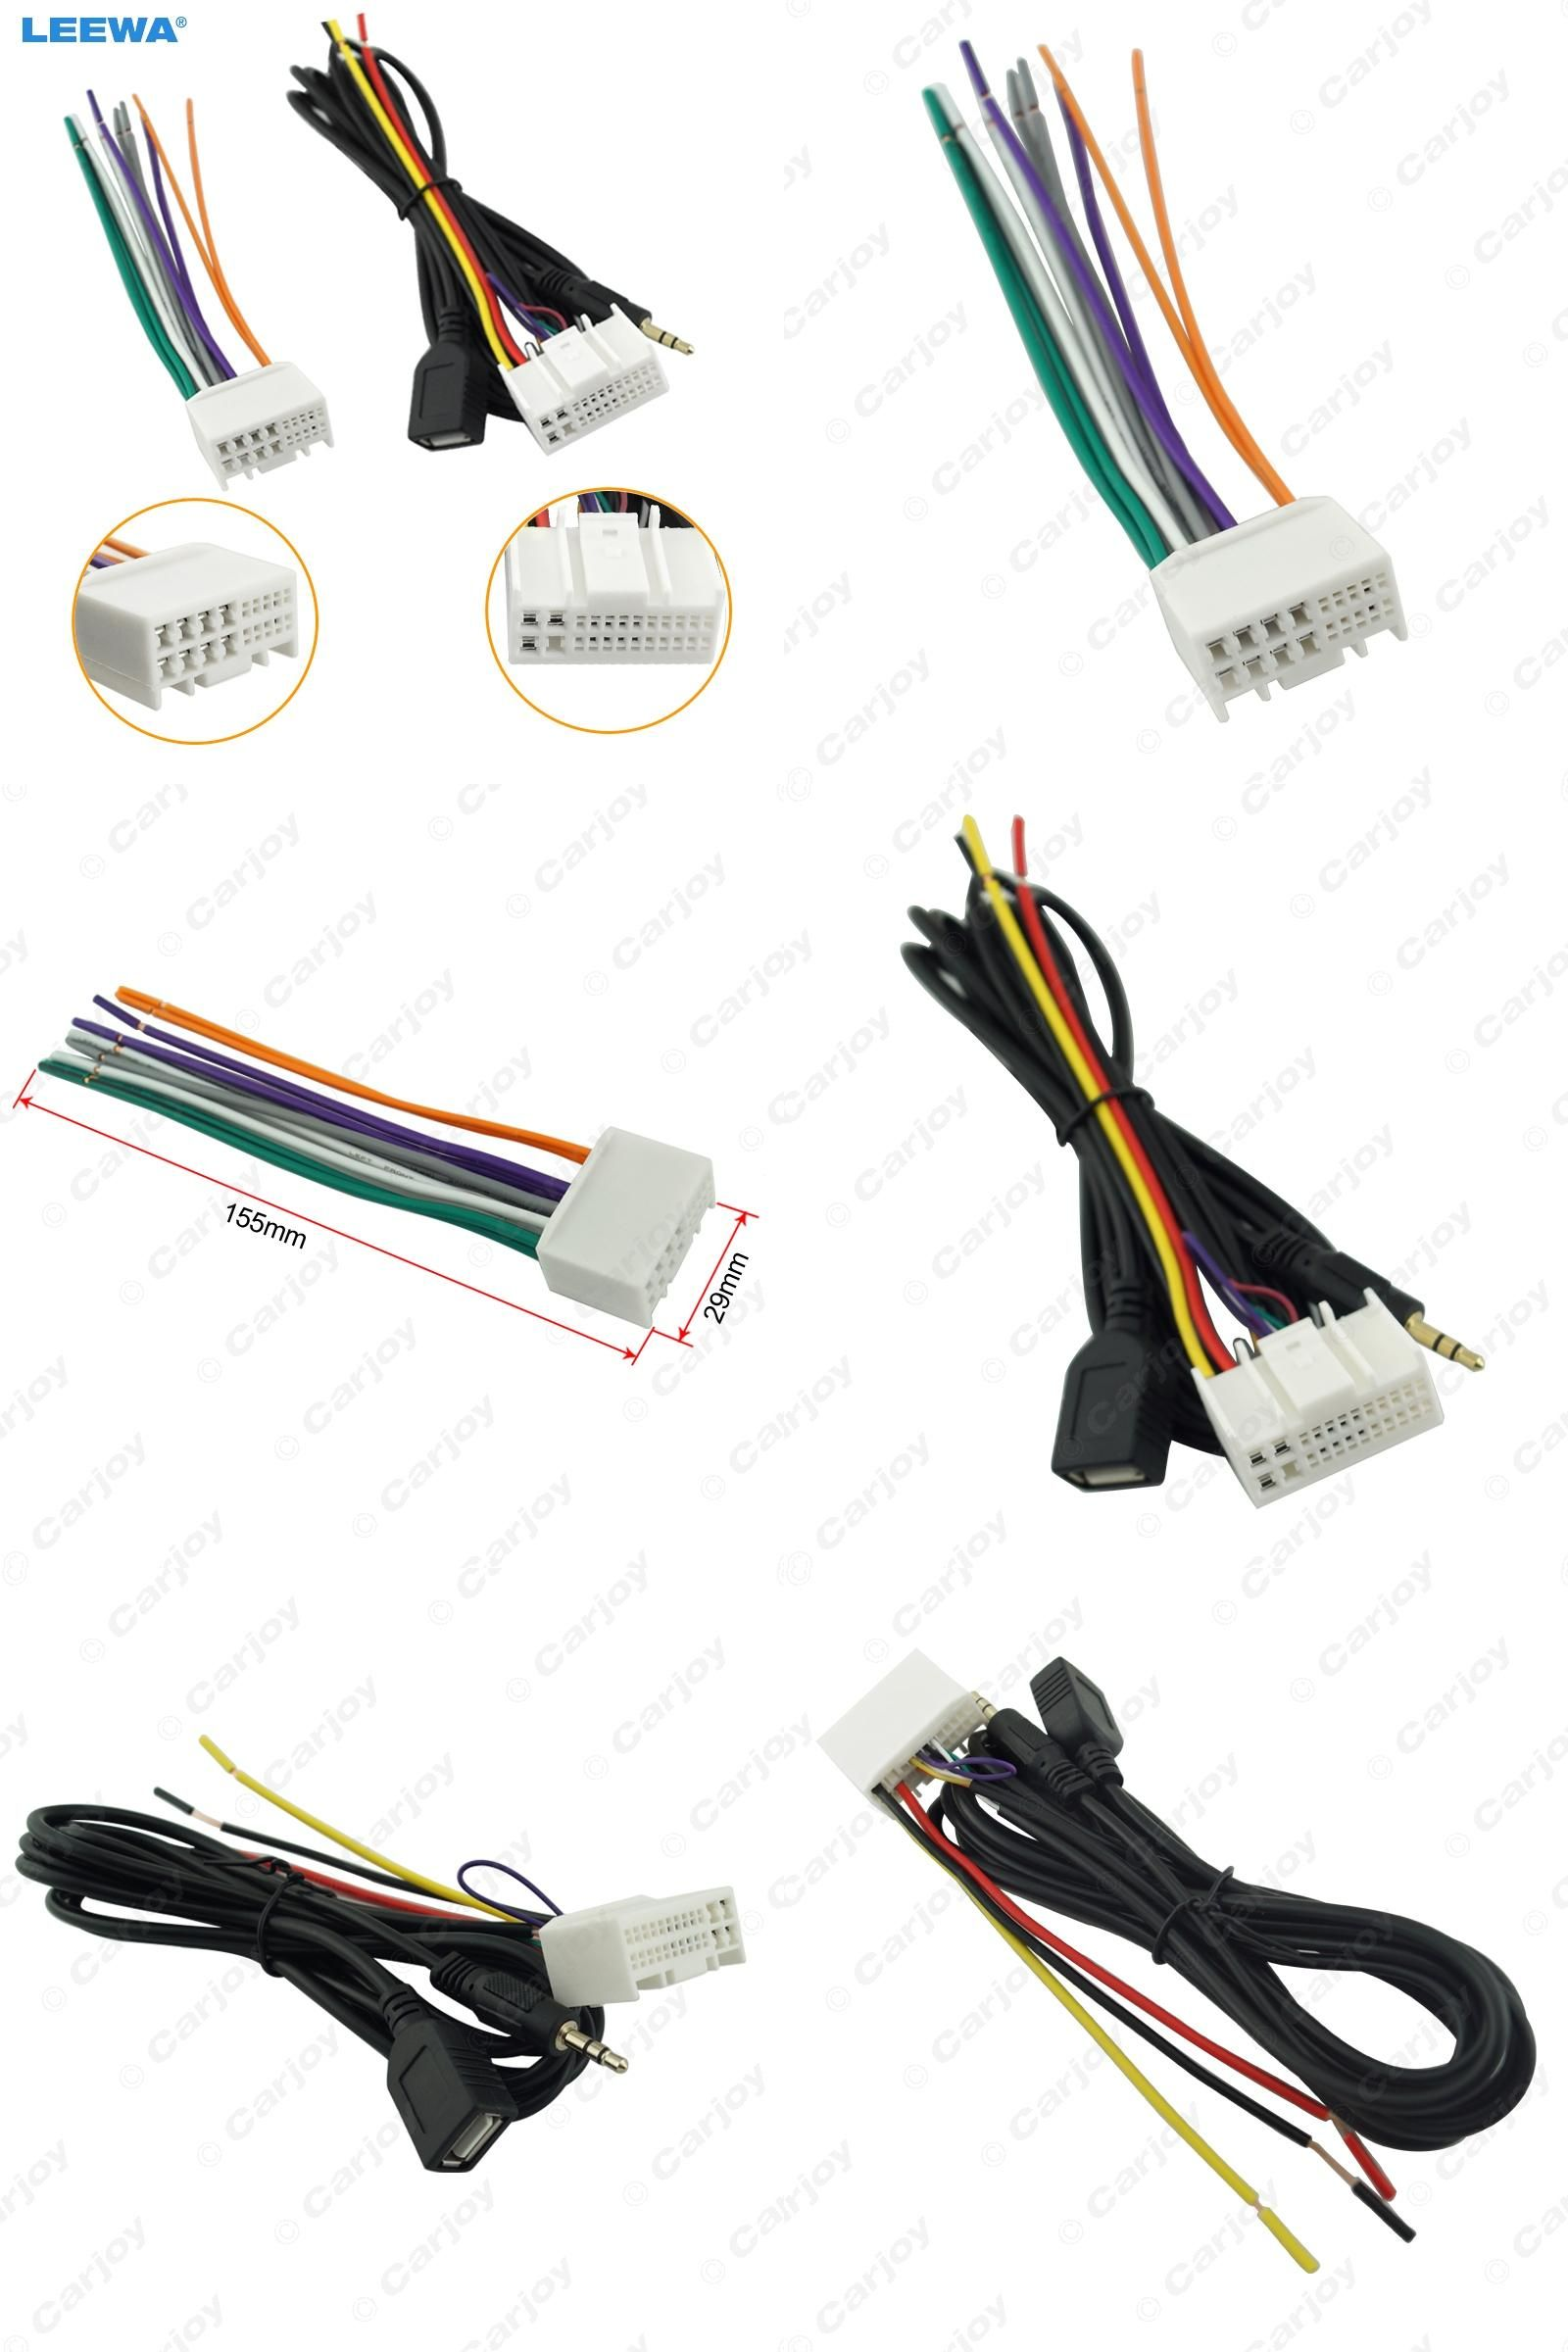 65bba15fb3a8d9bc4f1b698bf8827601 visit to buy] car audio cd stereo wiring harness adapter with usb where to buy a trailer wiring harness at cita.asia